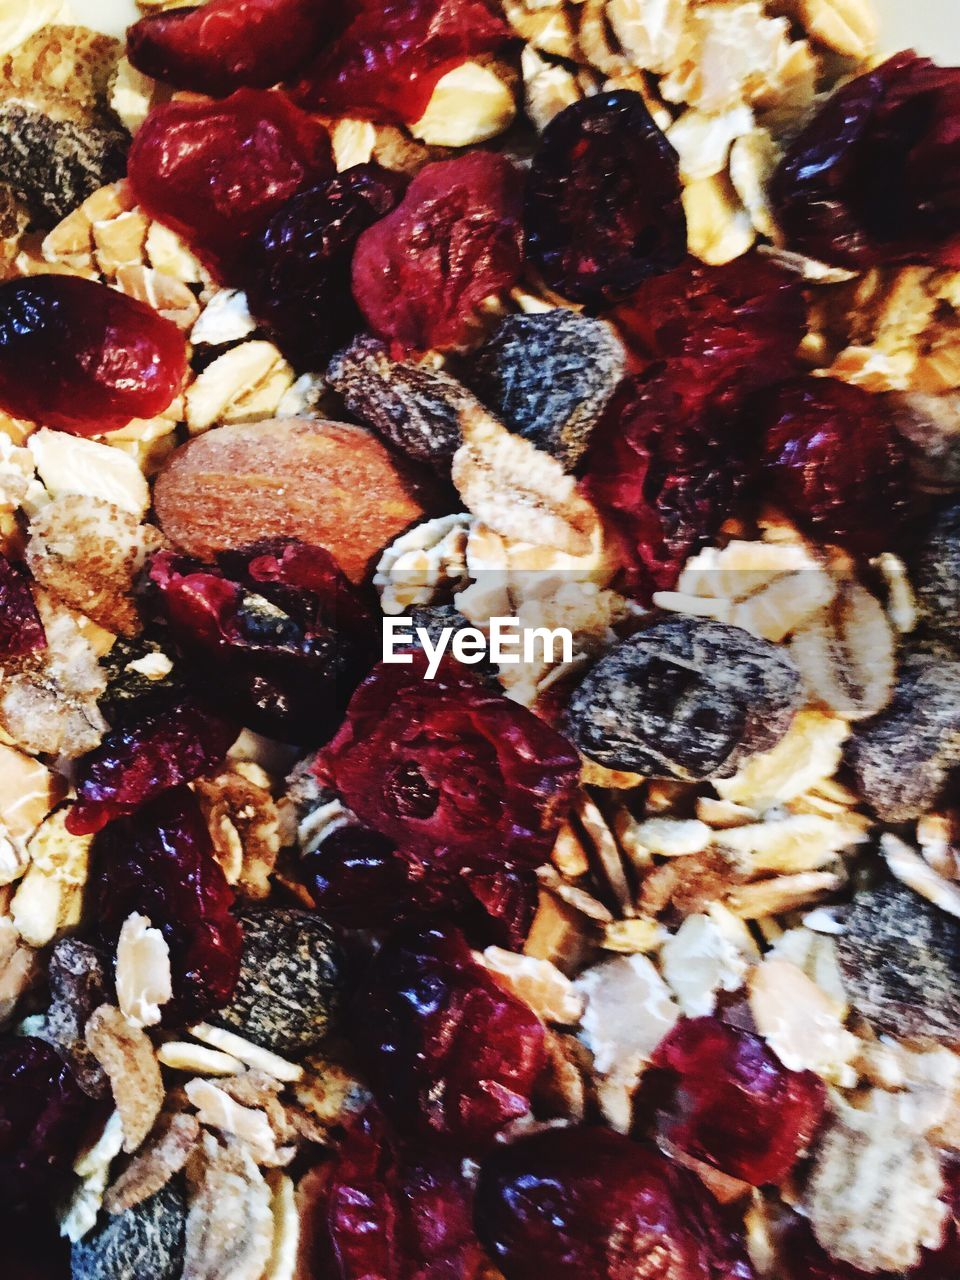 fruit, food and drink, blueberry, food, berry fruit, freshness, healthy eating, nut - food, no people, sweet food, breakfast, raspberry, close-up, indoors, full frame, backgrounds, dried fruit, granola, raisin, dessert, ready-to-eat, day